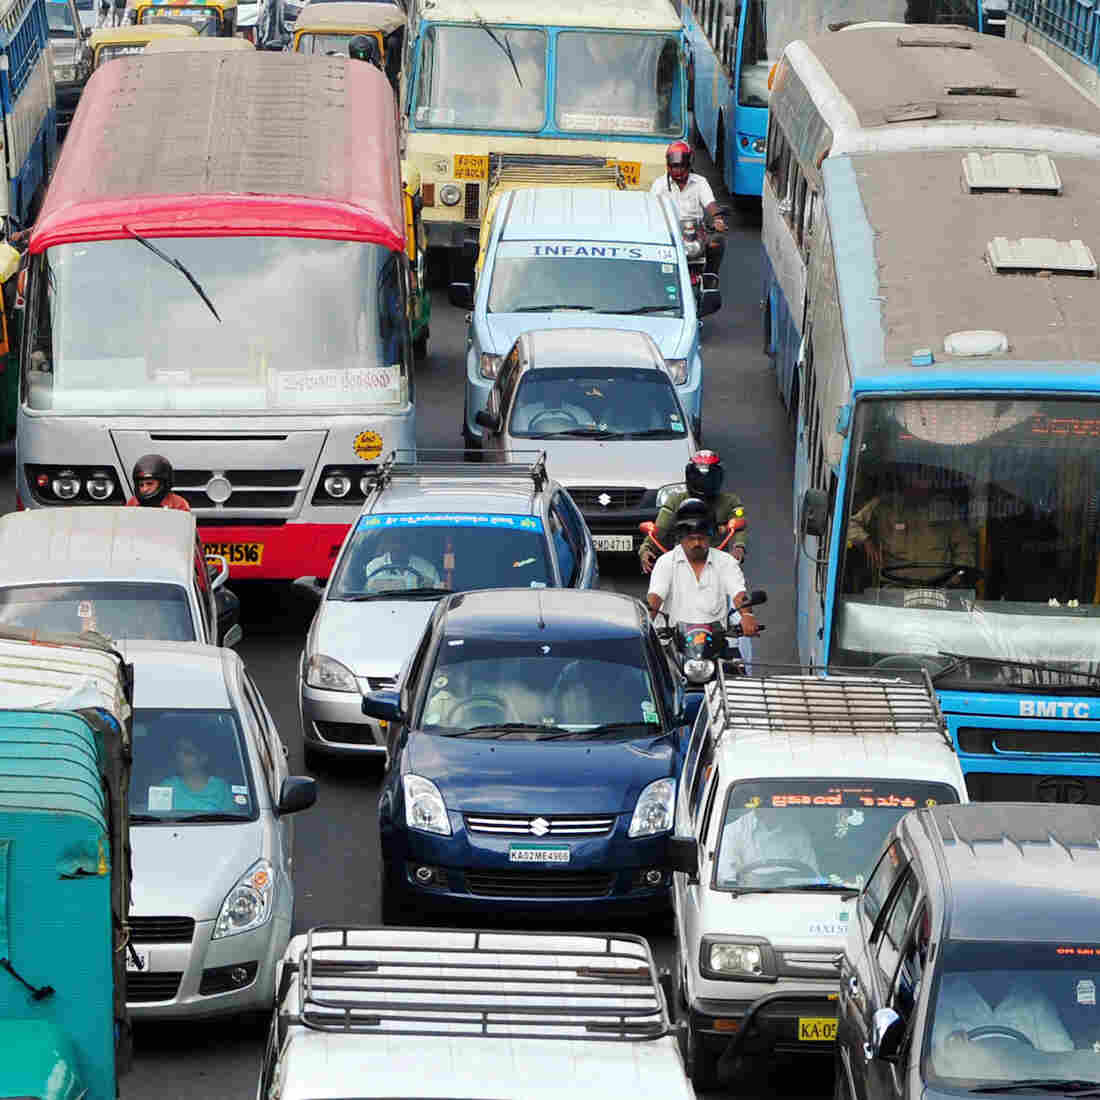 Lanes? What lanes? Bangalore's epic traffic jams make it hard for ambulances to get through.